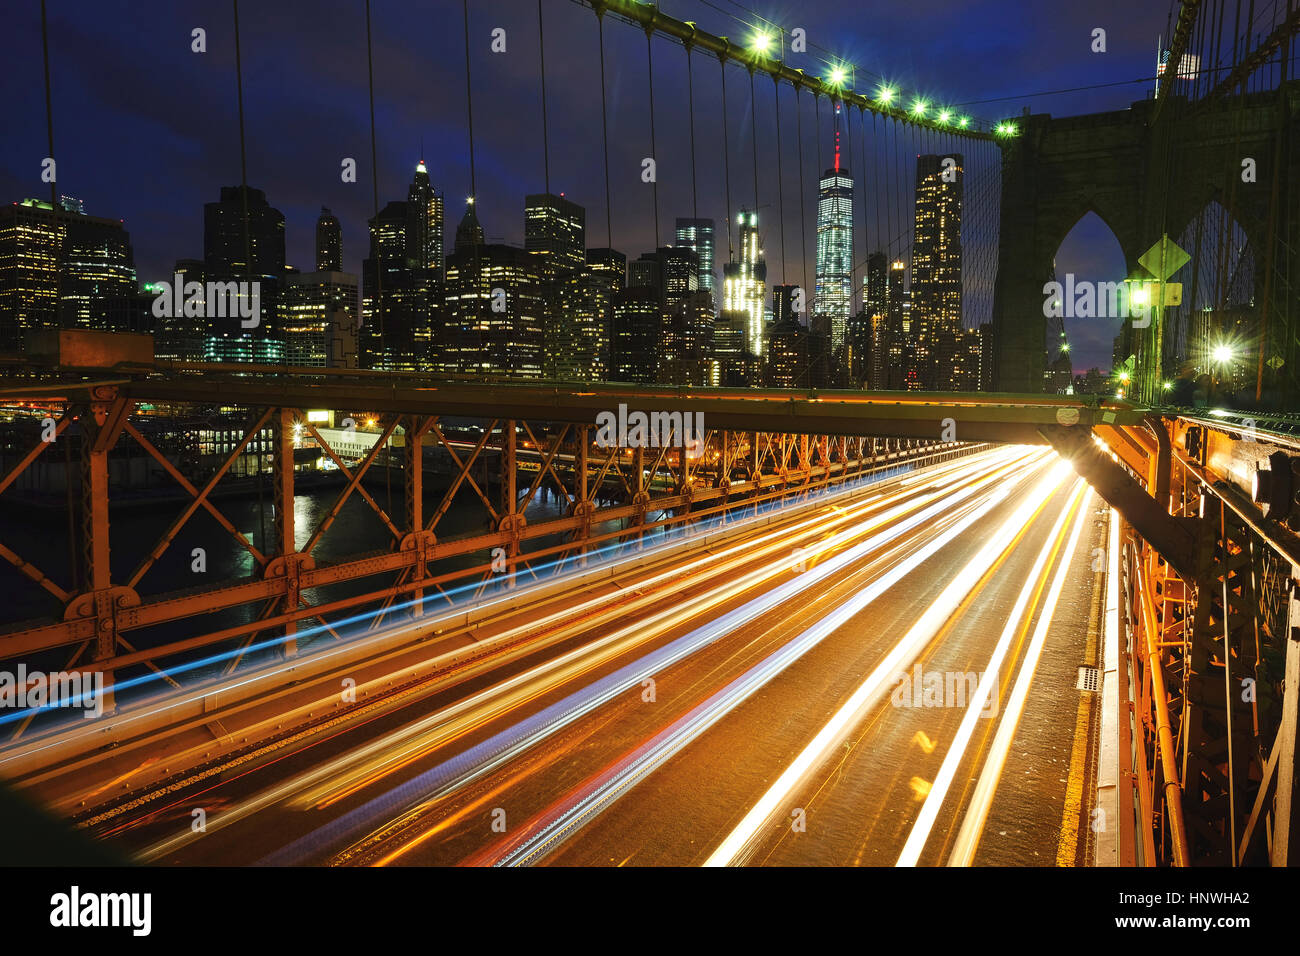 Light trails on Brooklyn bridge, New York, USA - Stock Image